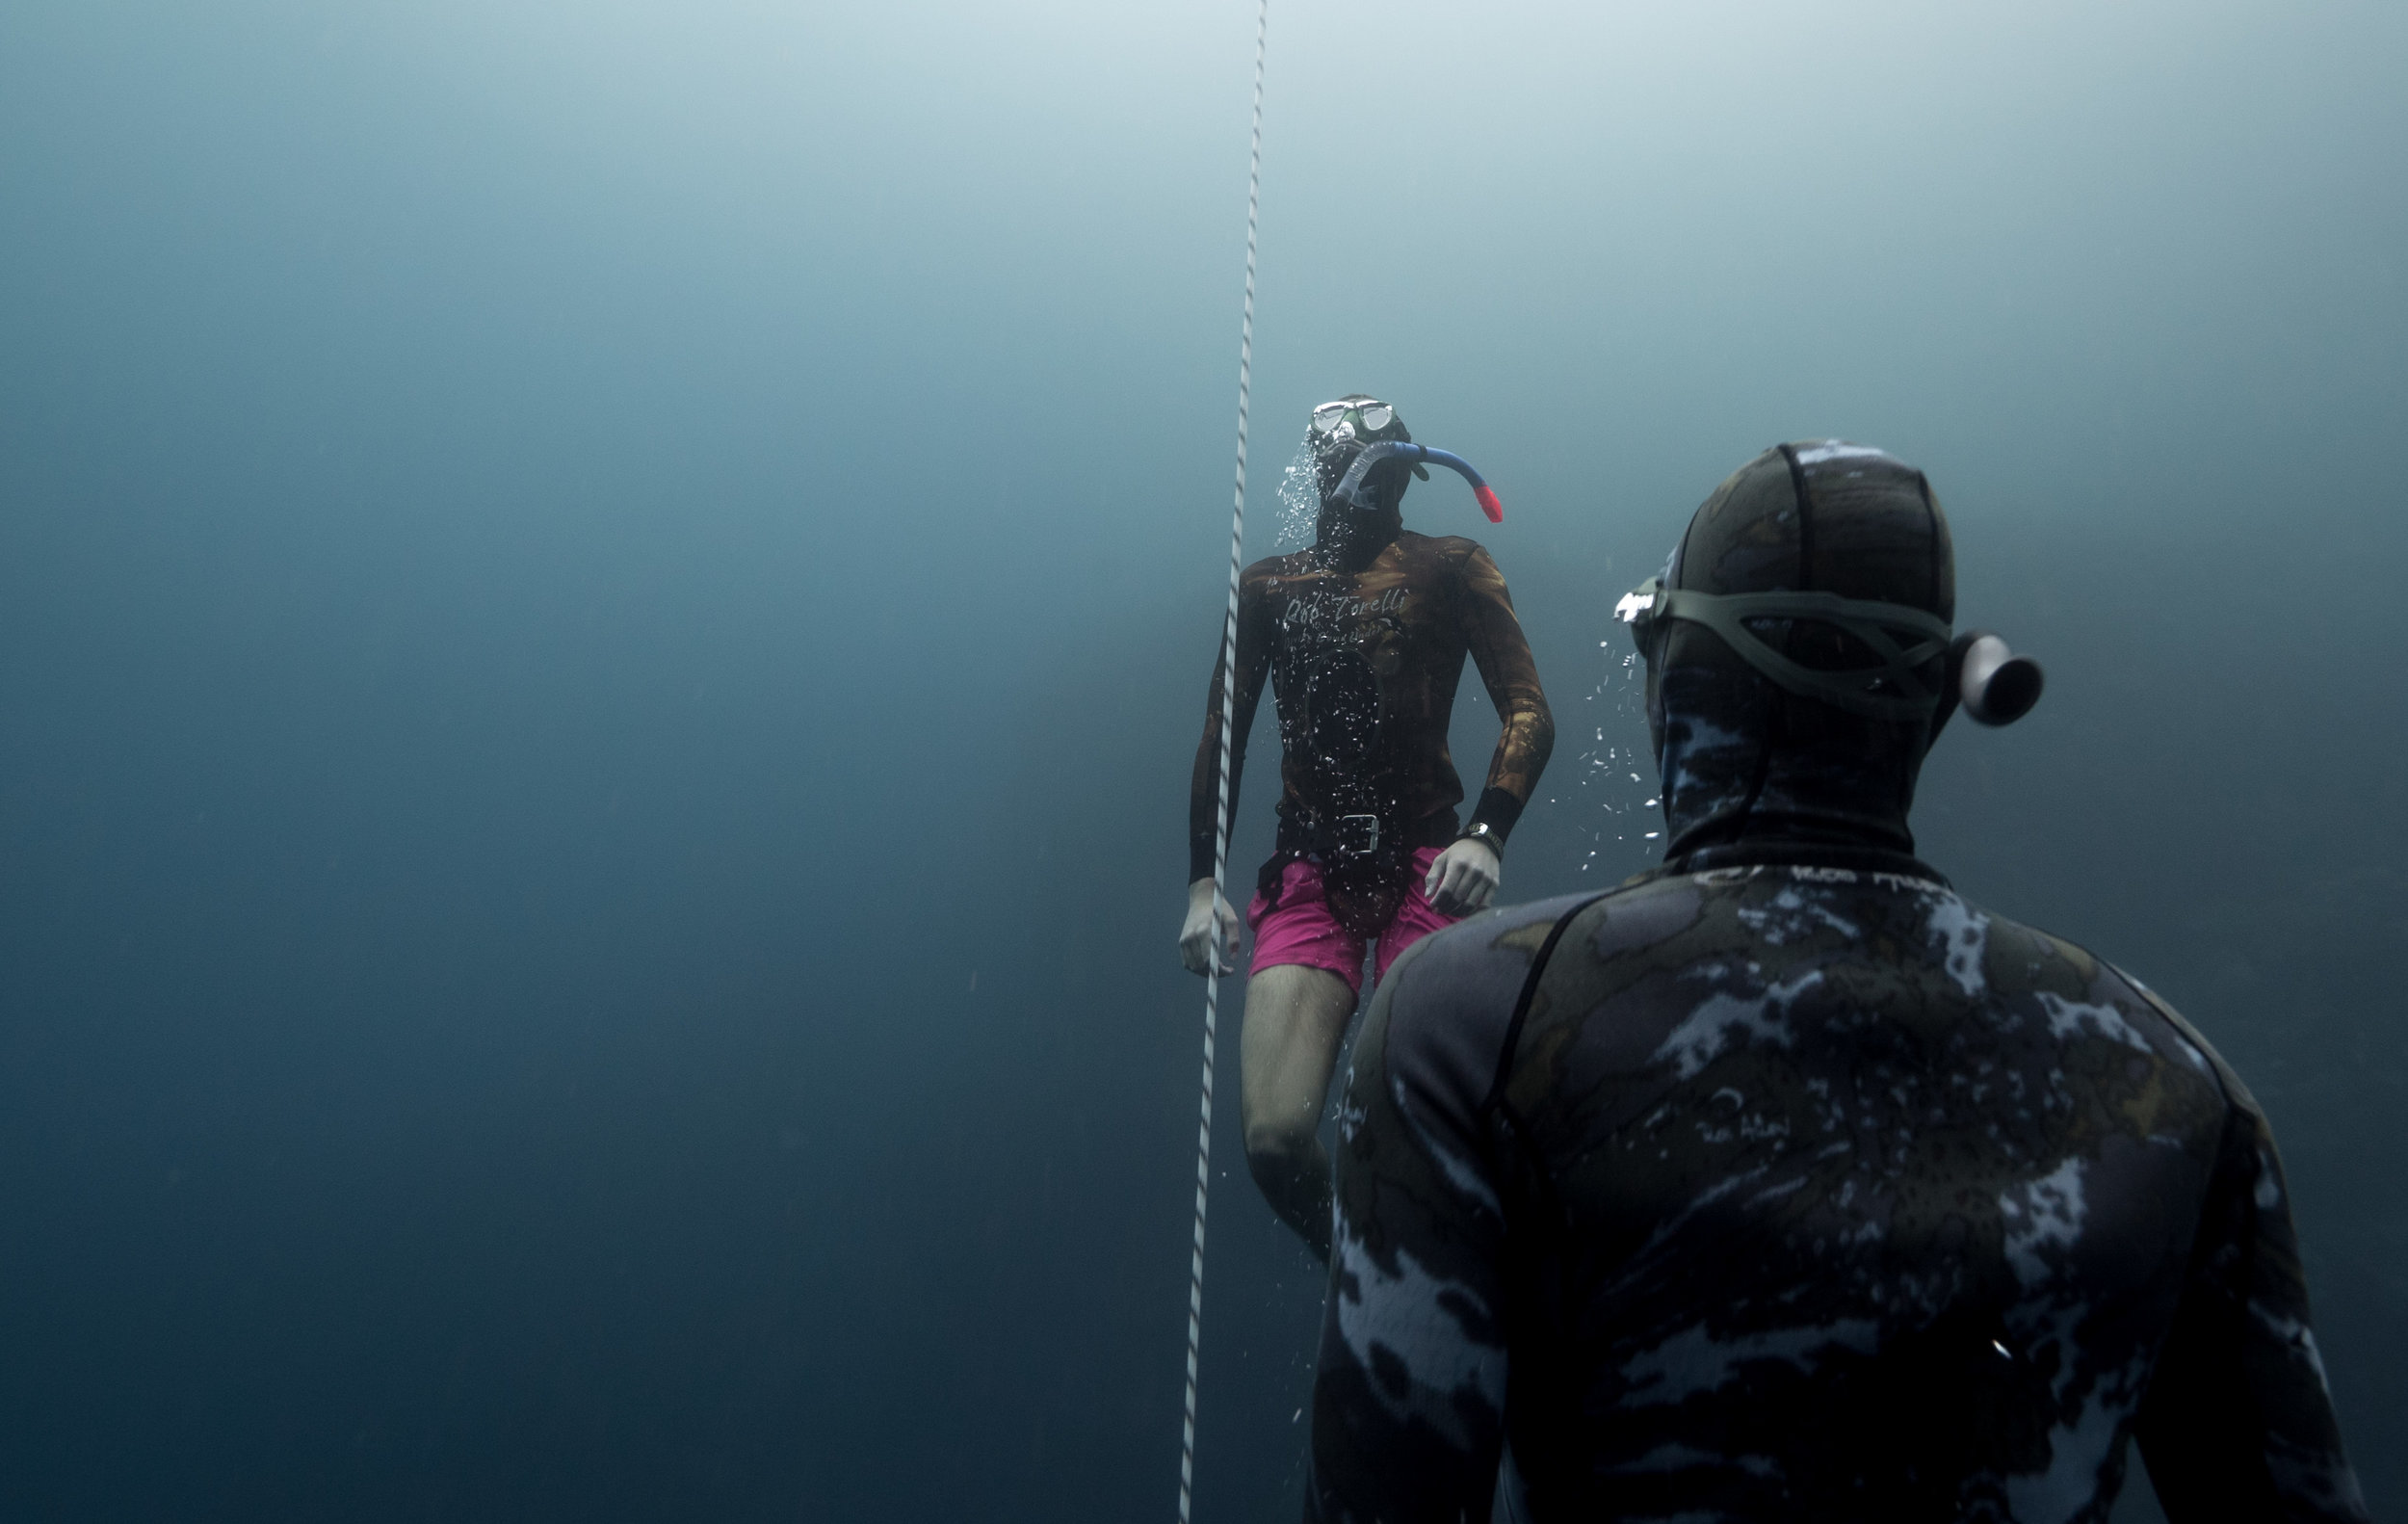 Freedive training